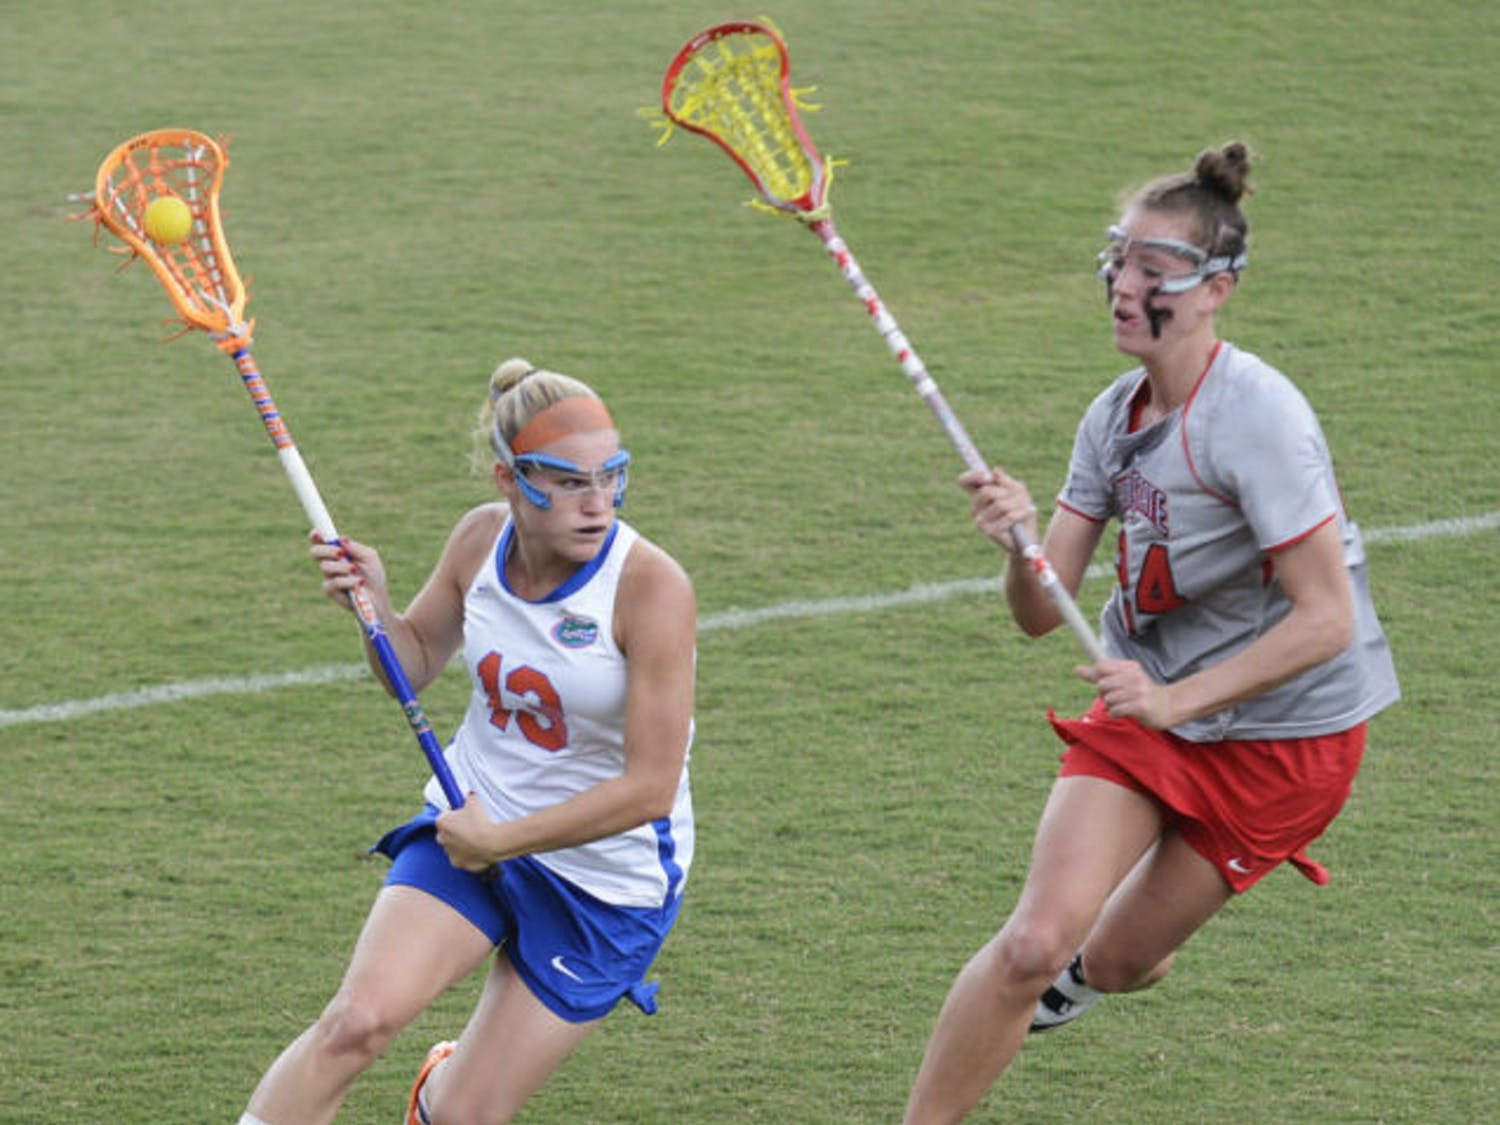 Florida attacker Ashley Bruns (13) runs past Ohio State defender Tayler Kuzma (24) in the Gators' 13-7 win against the Buckeyes on March 23 at Dizney Stadium. Bruns scored four goals in Florida's 16-5 win against Denver in the second round of the NCAA Tournament.